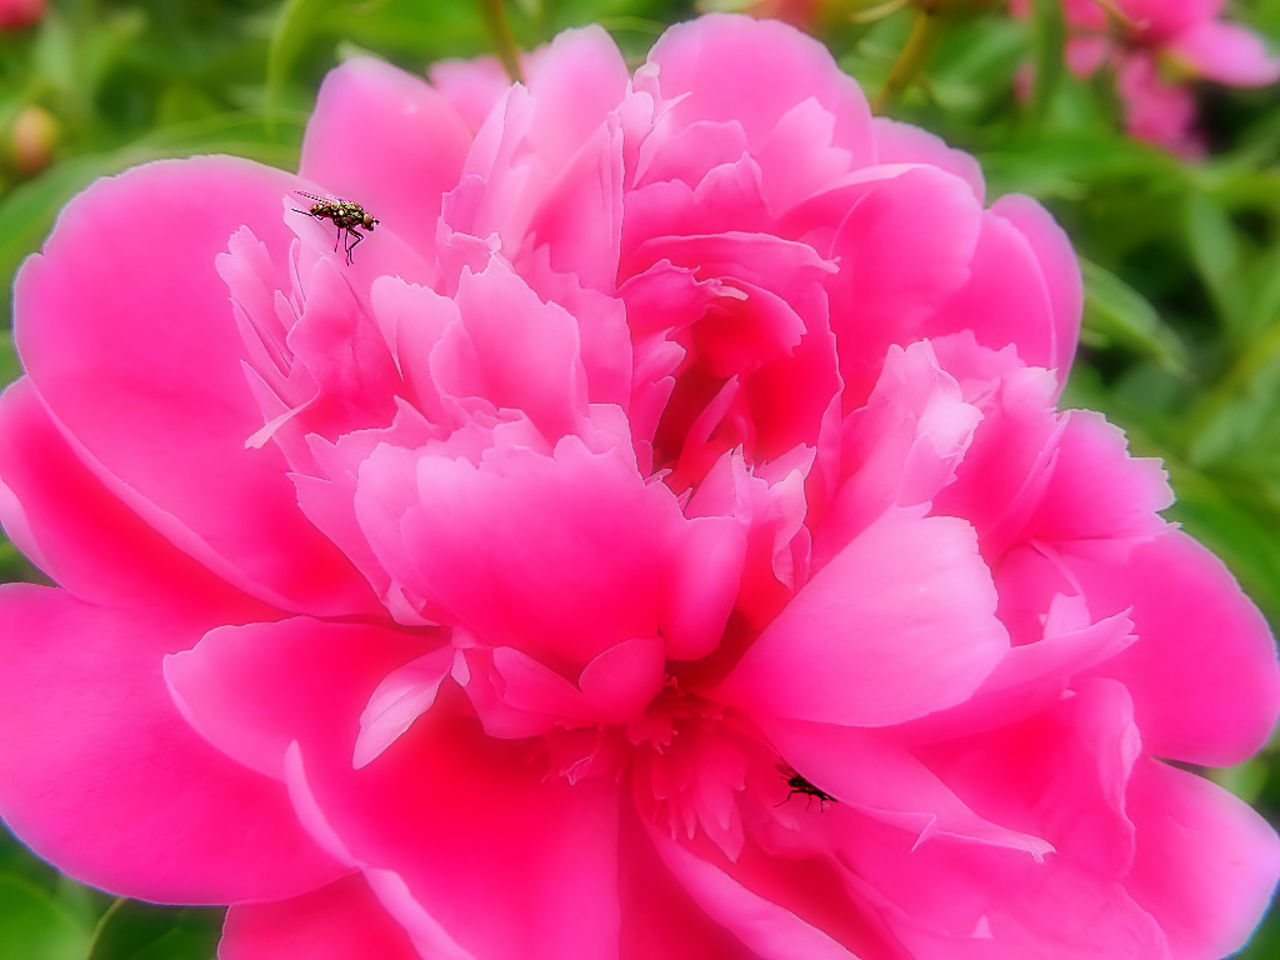 flower, pink color, one animal, insect, petal, animal themes, animals in the wild, nature, beauty in nature, close-up, no people, fragility, day, outdoors, animal wildlife, focus on foreground, plant, flower head, growth, freshness, blooming